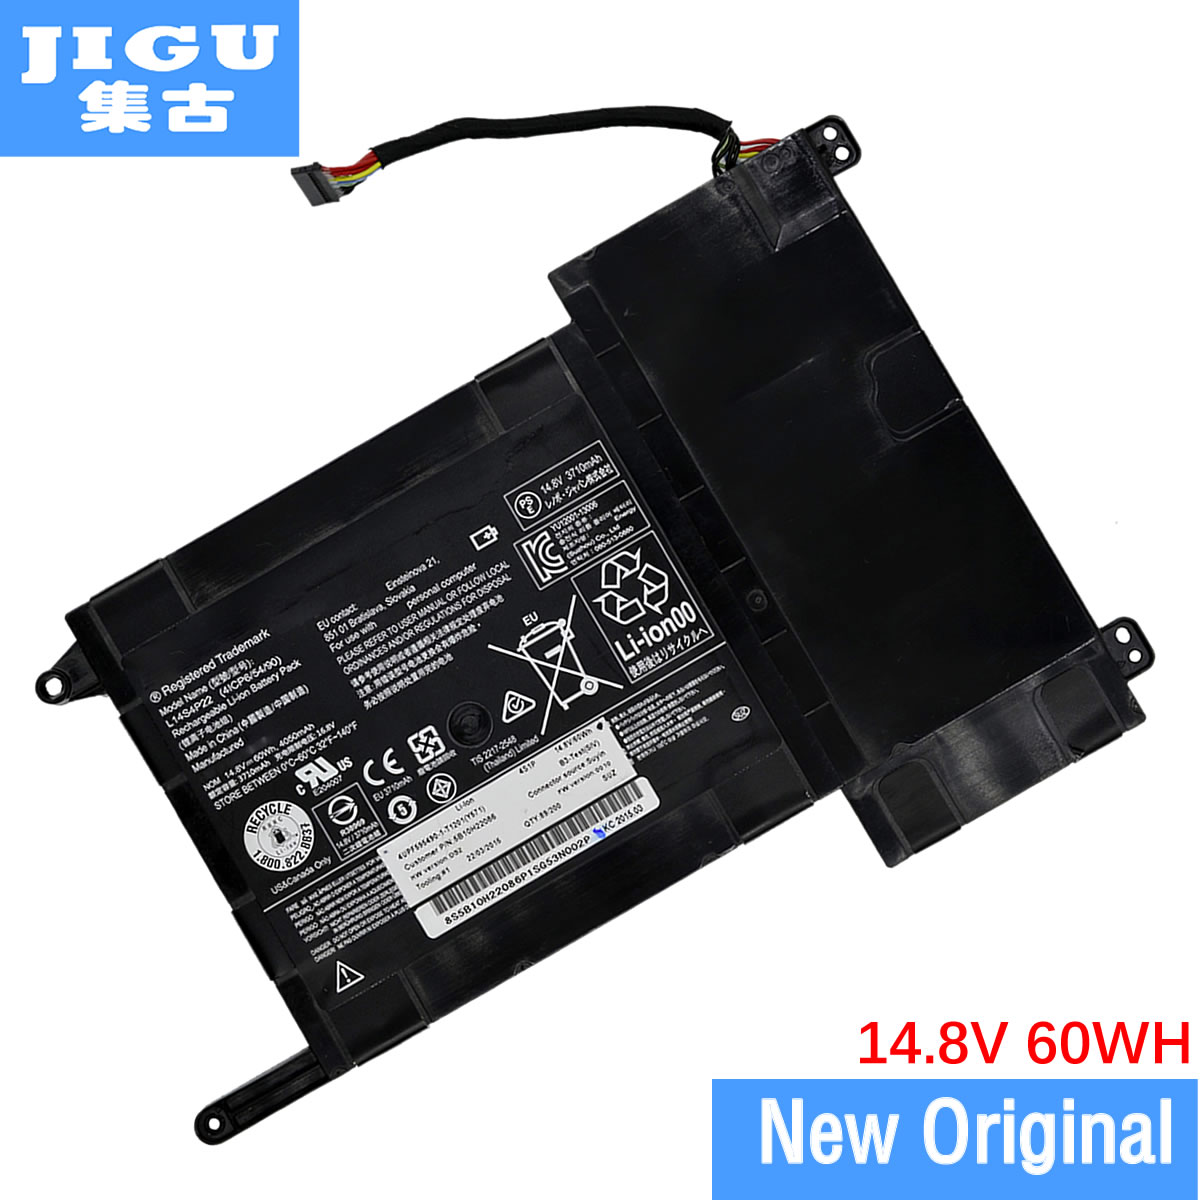 JIGU laptop battery L14M4P23 FOR LENOVO IdeaPad Y700 Y700 Y700-15ISK-ISE Y700-17ISK Y700-ISE jigu laptop battery for dell 8858x 8p3yx 911md vostro 3460 3560 latitude e6120 e6420 e6520 4400mah